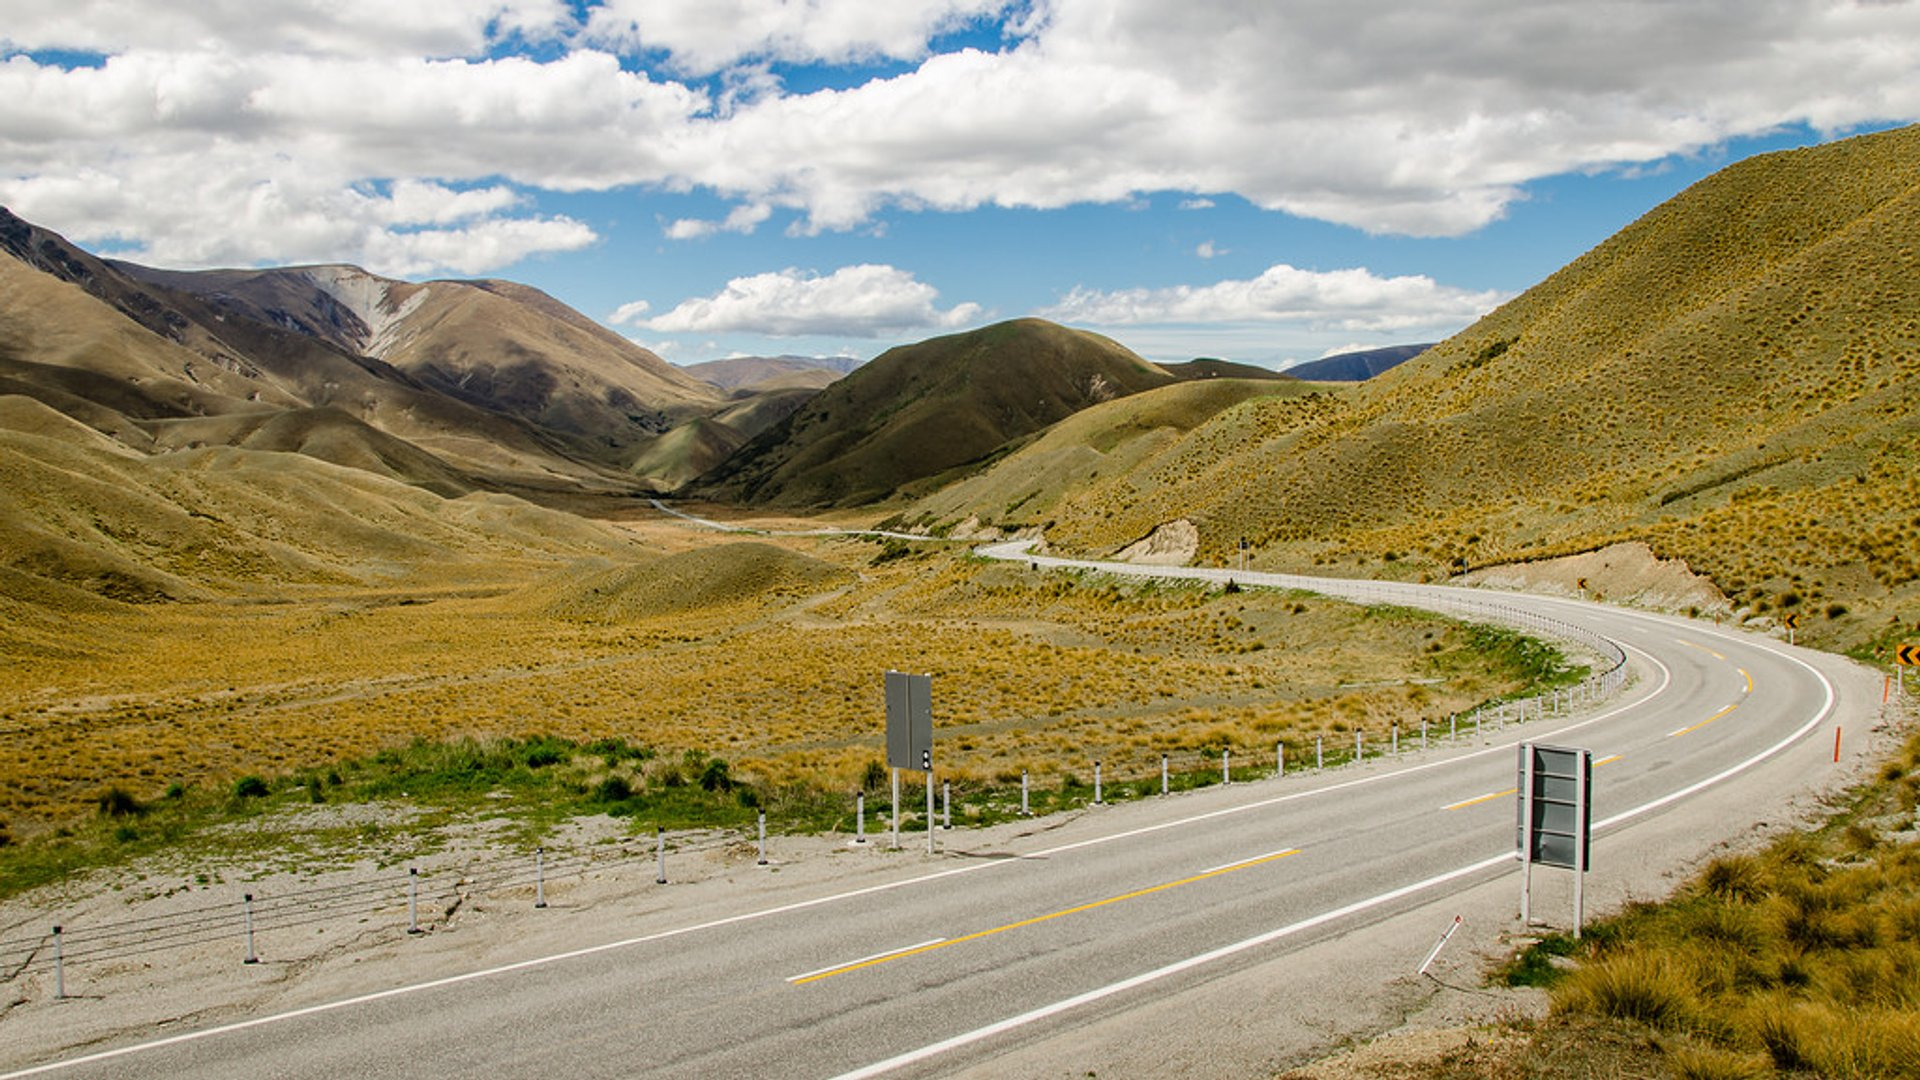 Lindis Pass in New Zealand 2020 - Best Time